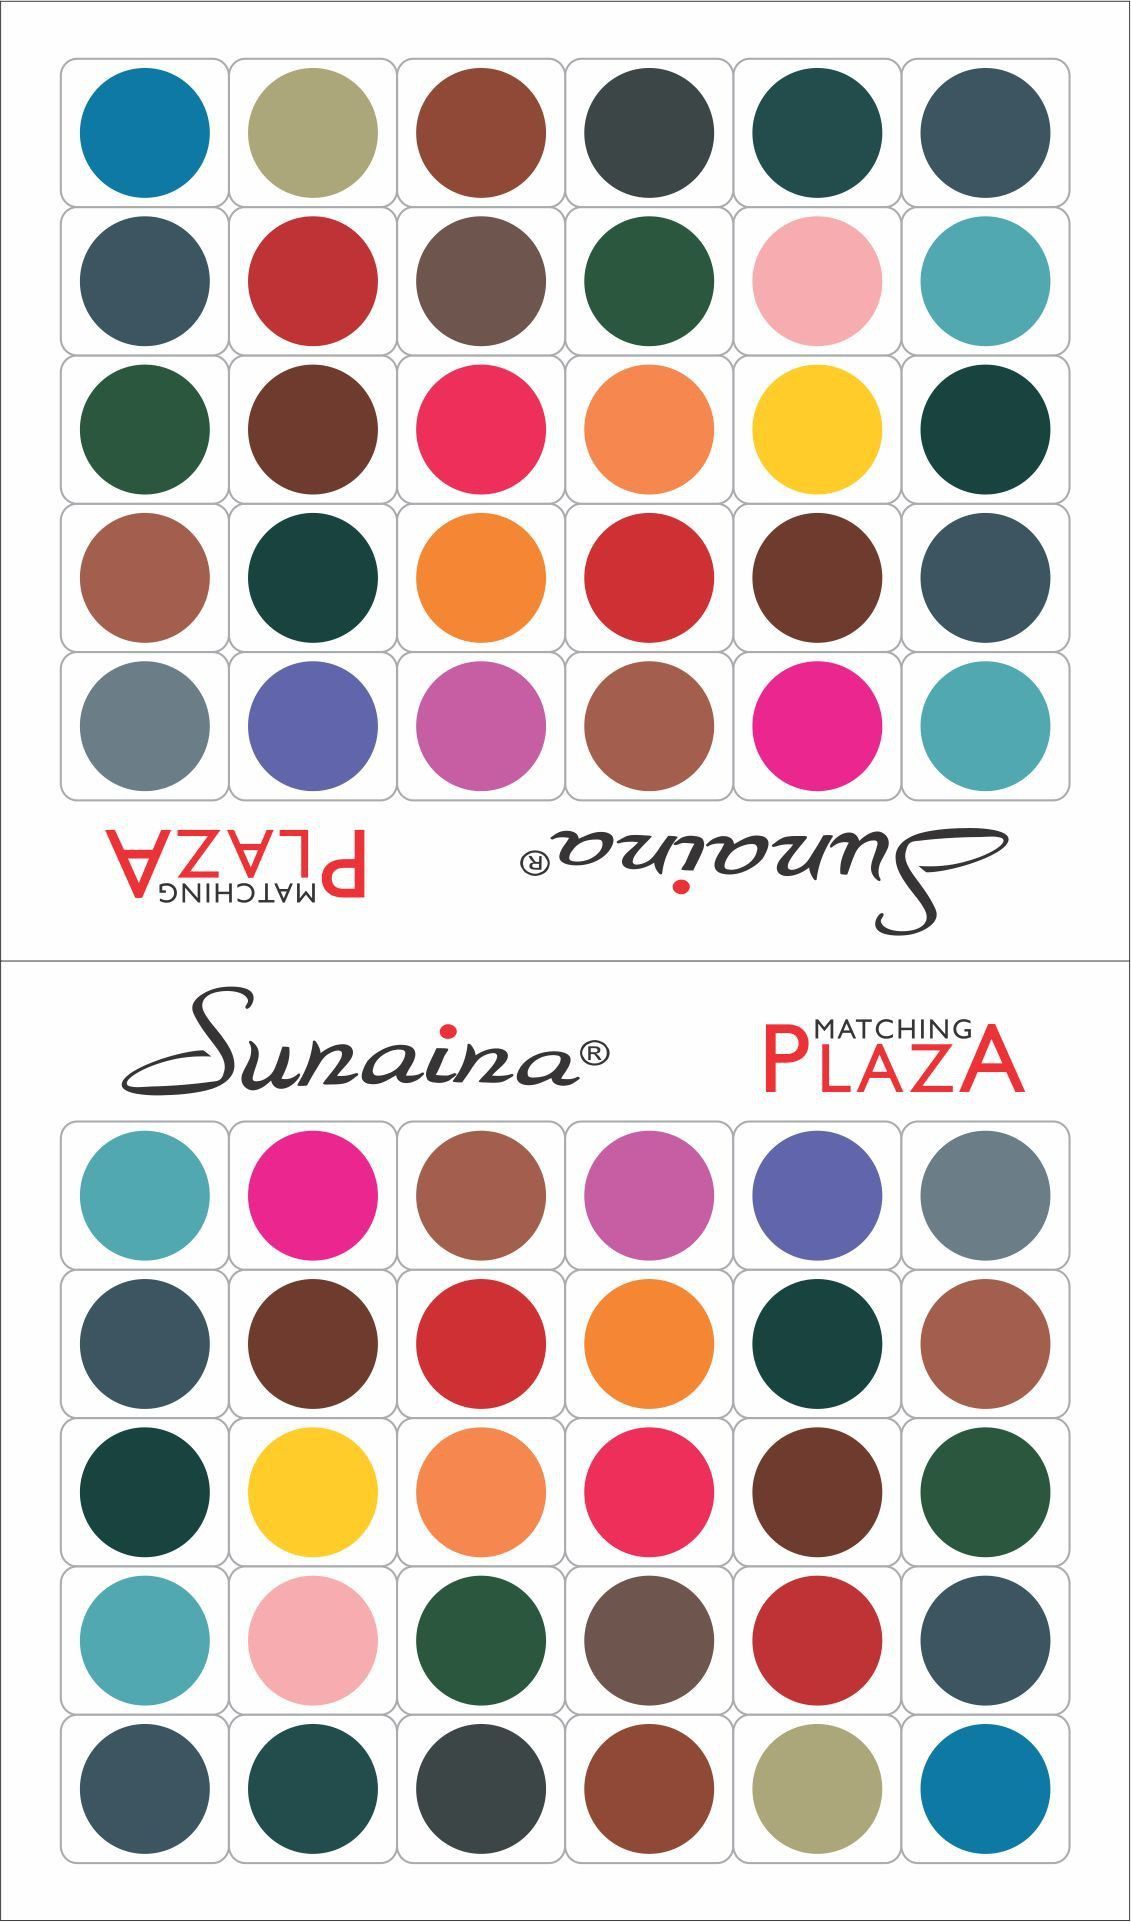 Sunaina Matching Plaza Size-2 Forehead Multicolor Bindis(Fancy Design)